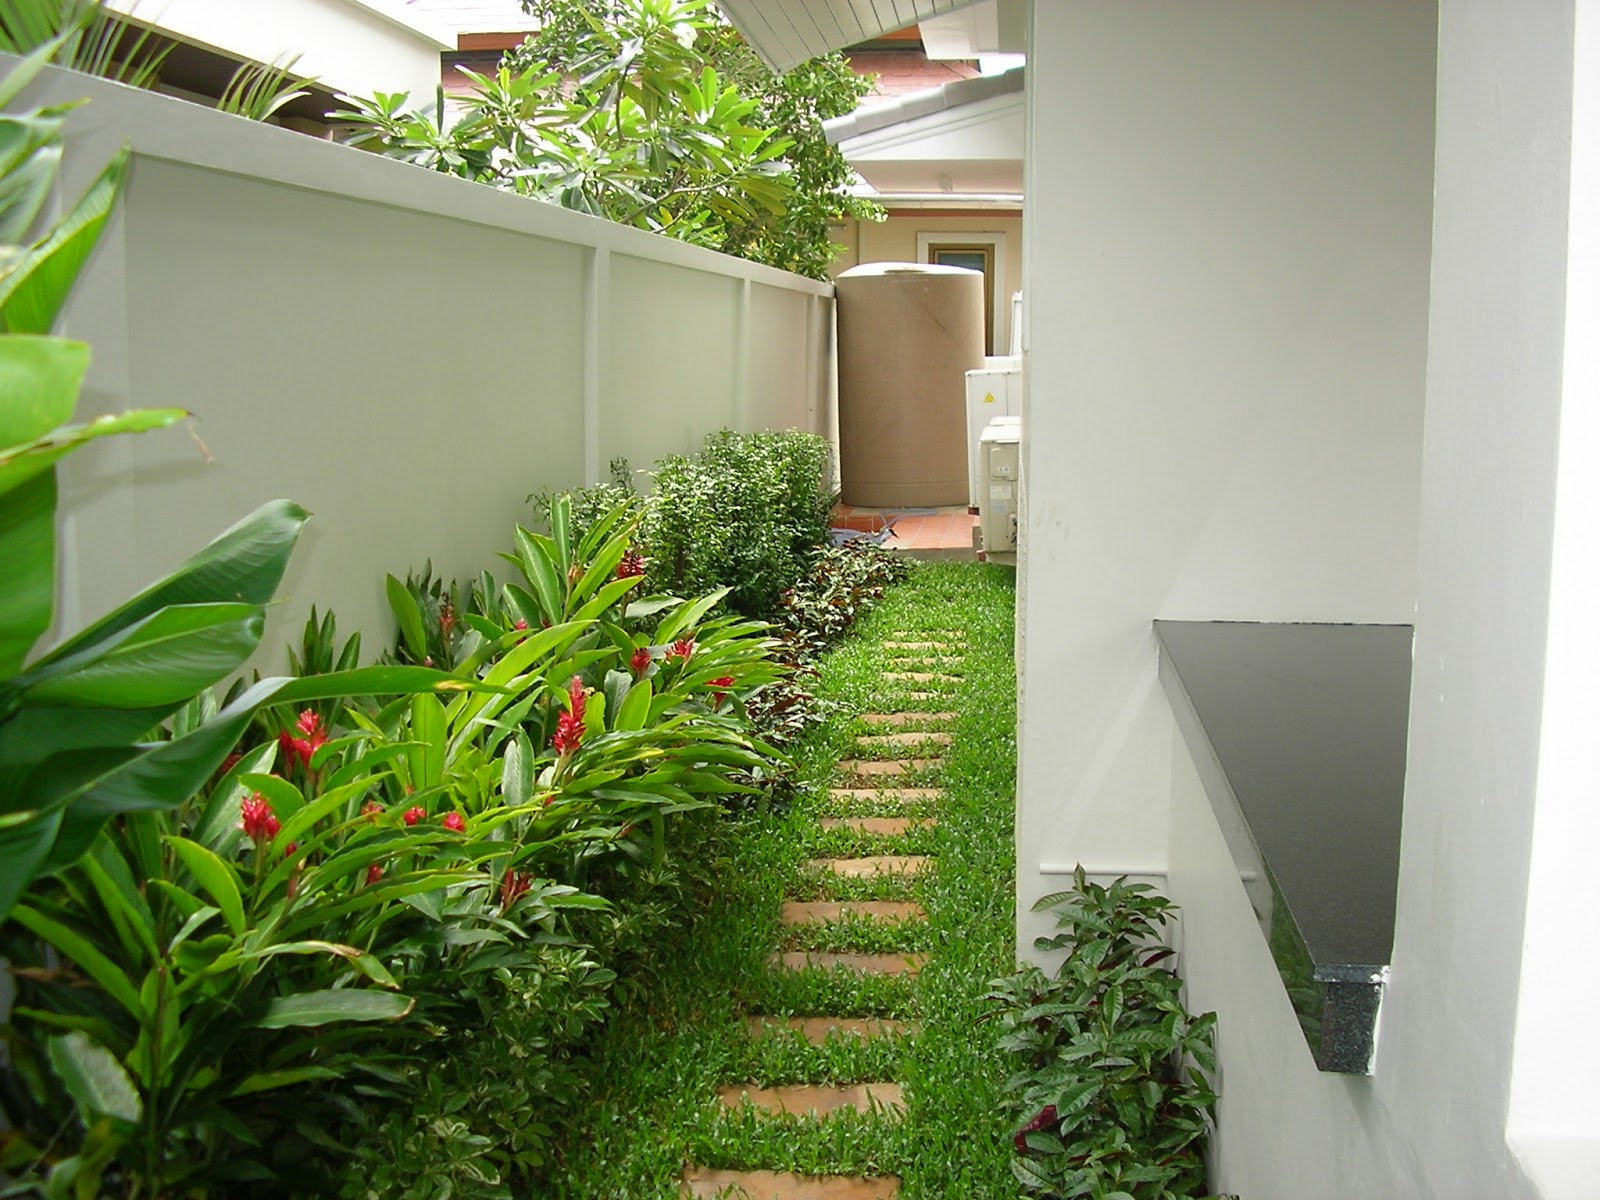 Gardensiam residential landscape design for Residential landscape plan